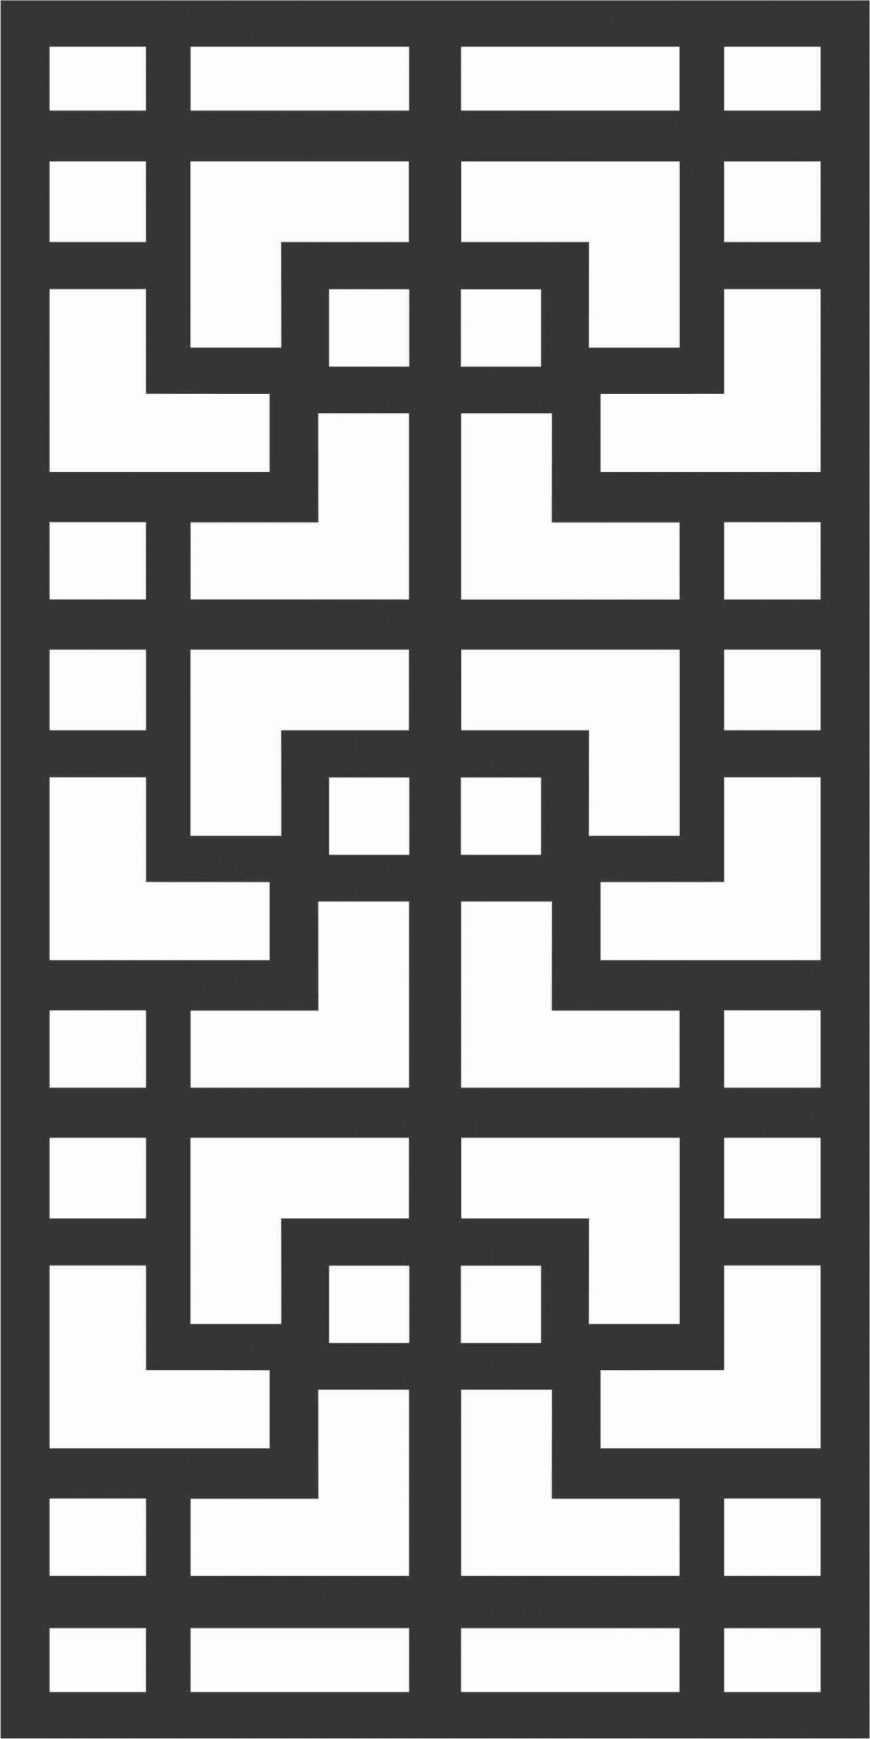 Decorative Screen Patterns For Laser Cutting 171 Free DXF File